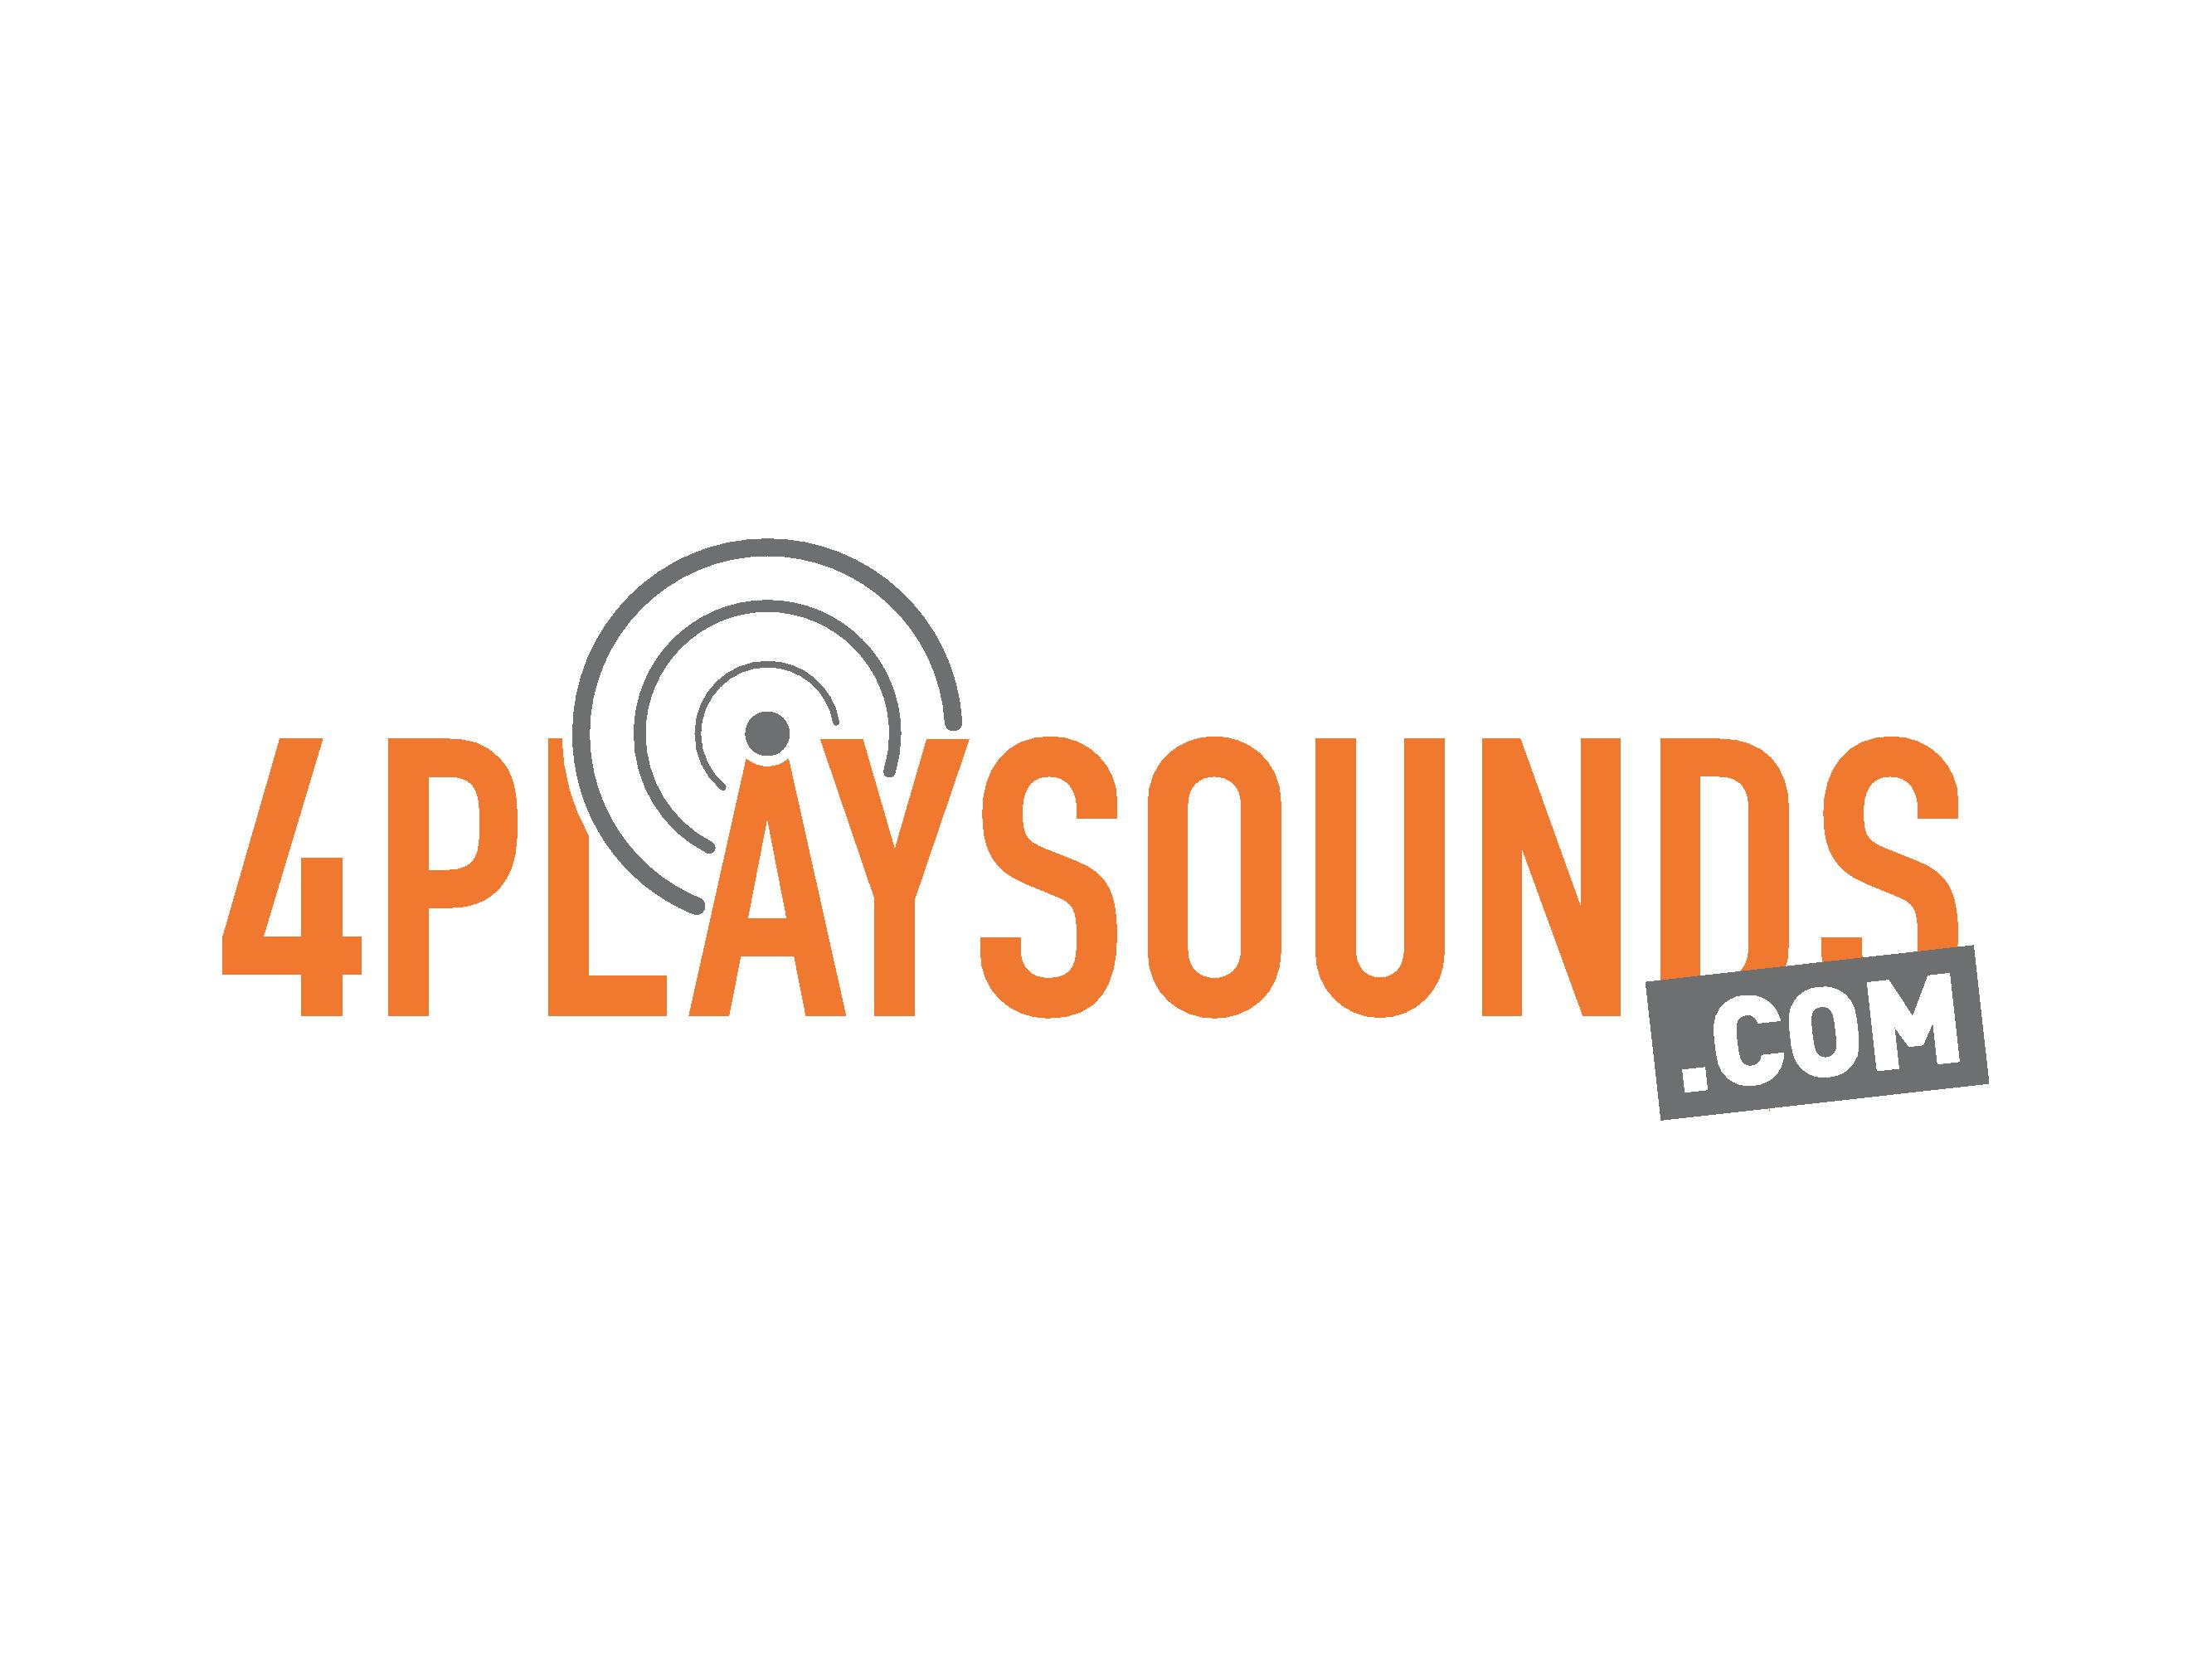 4playsounds-long-page-001